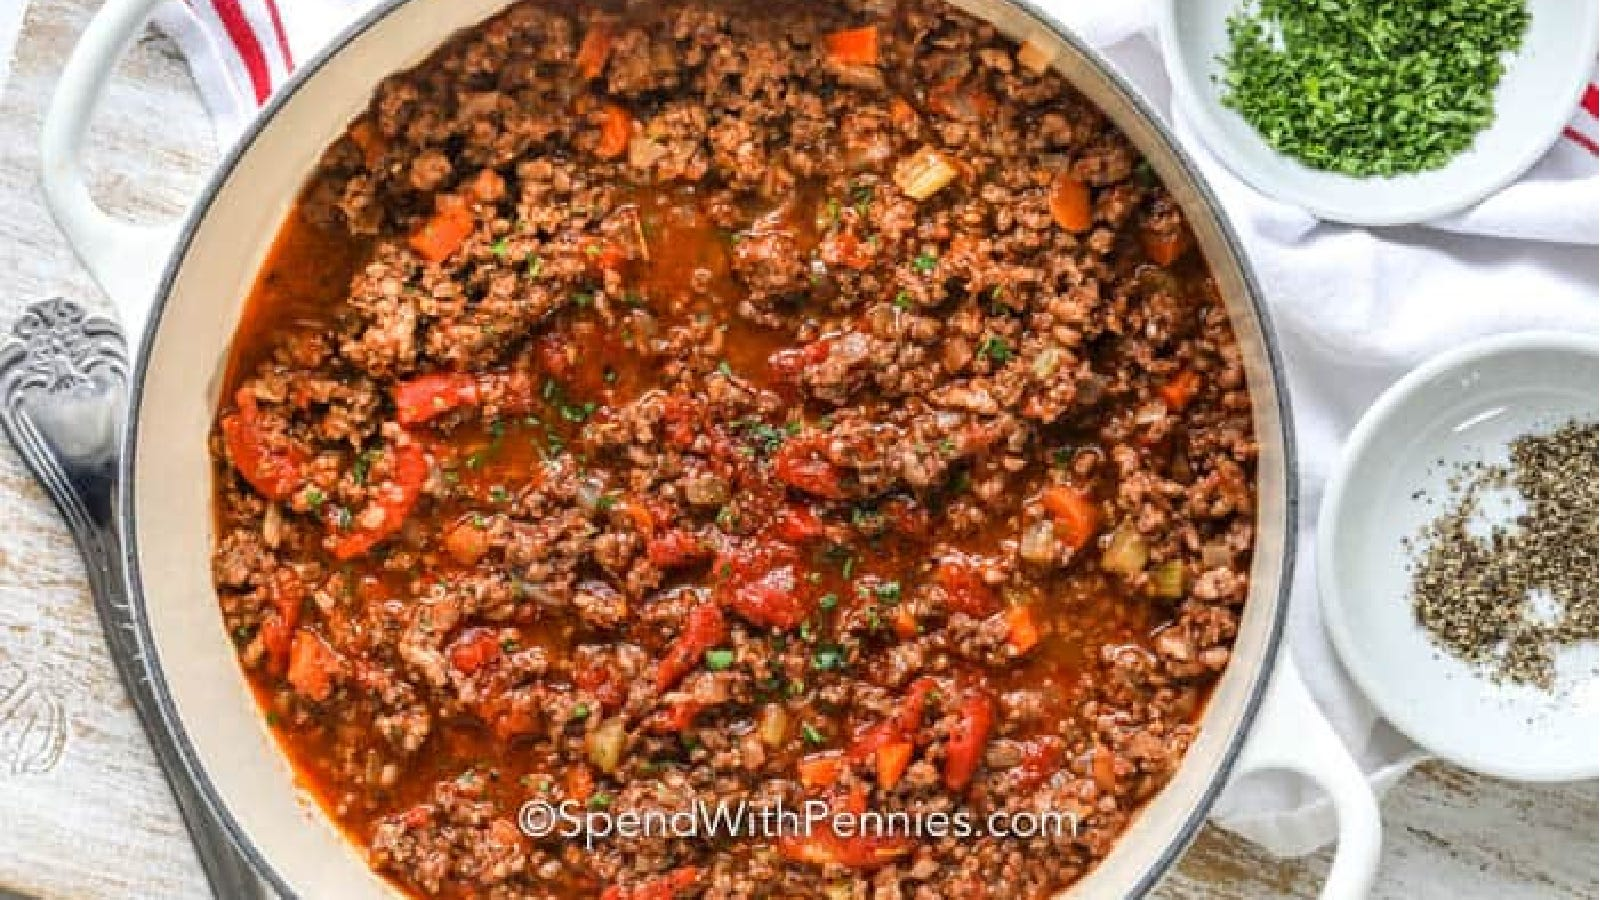 An enamed cast iron Dutch oven filled with a hearty bolognese sauce with pepper and herbs on the side.